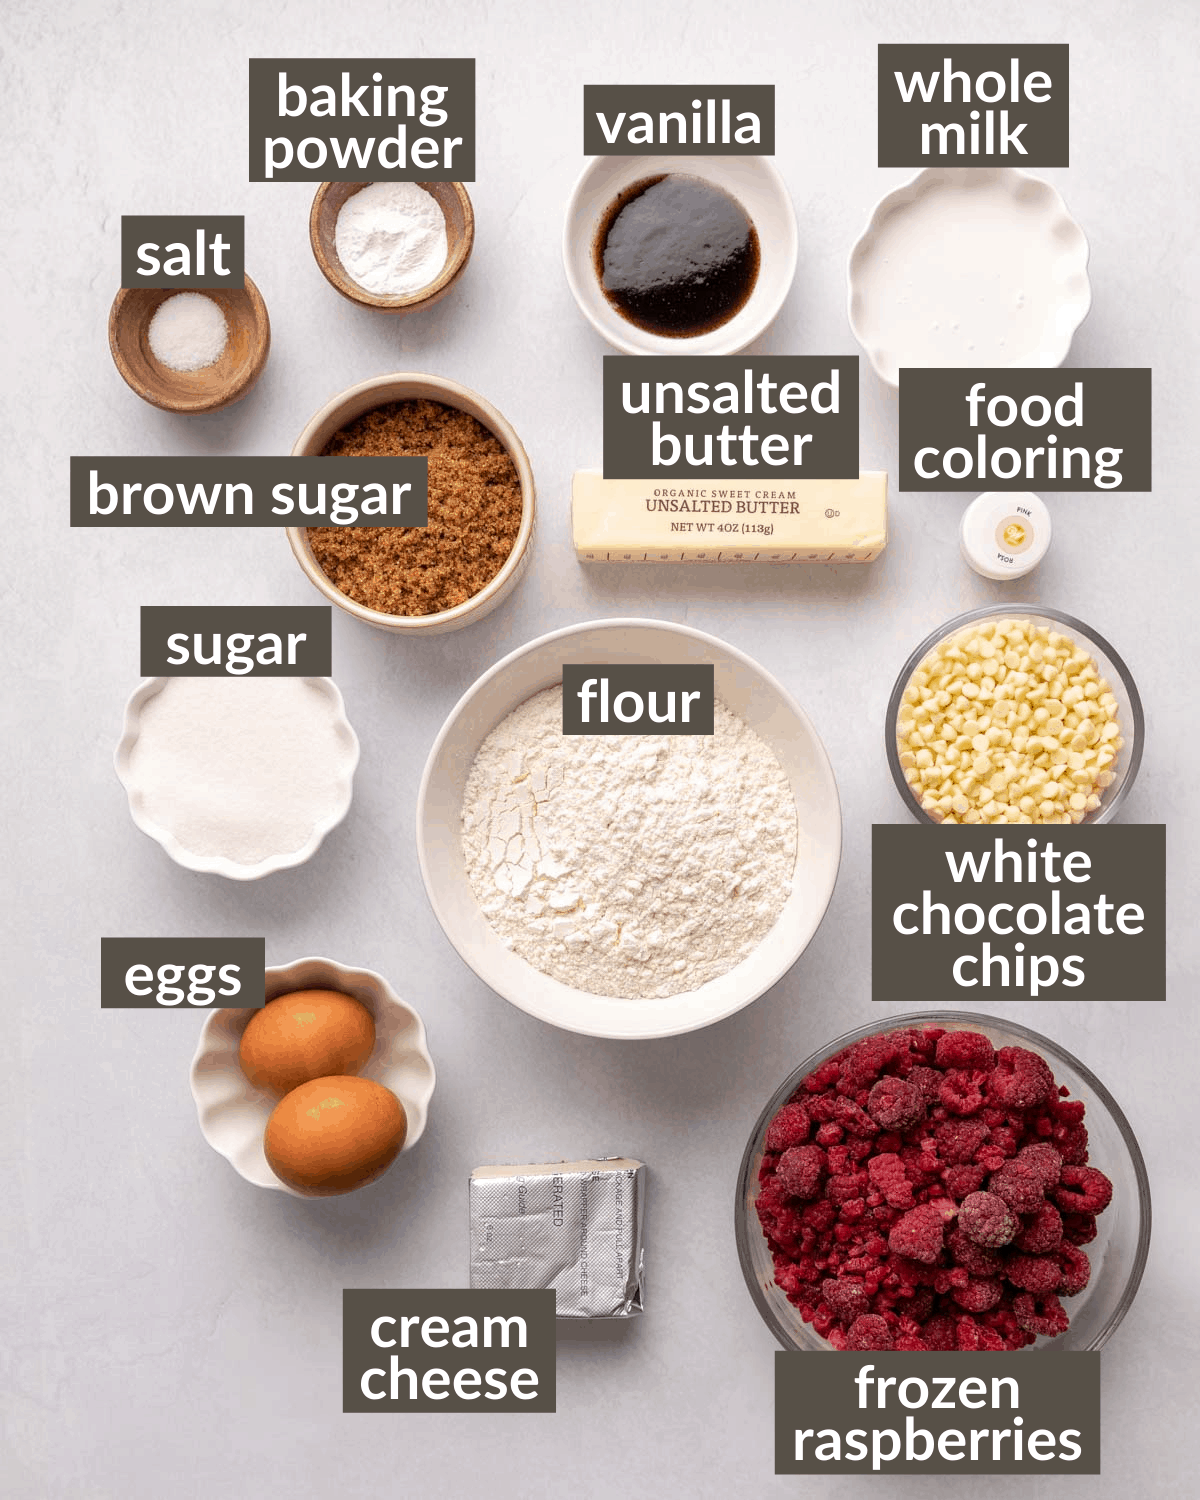 ingredients needed for this recipe